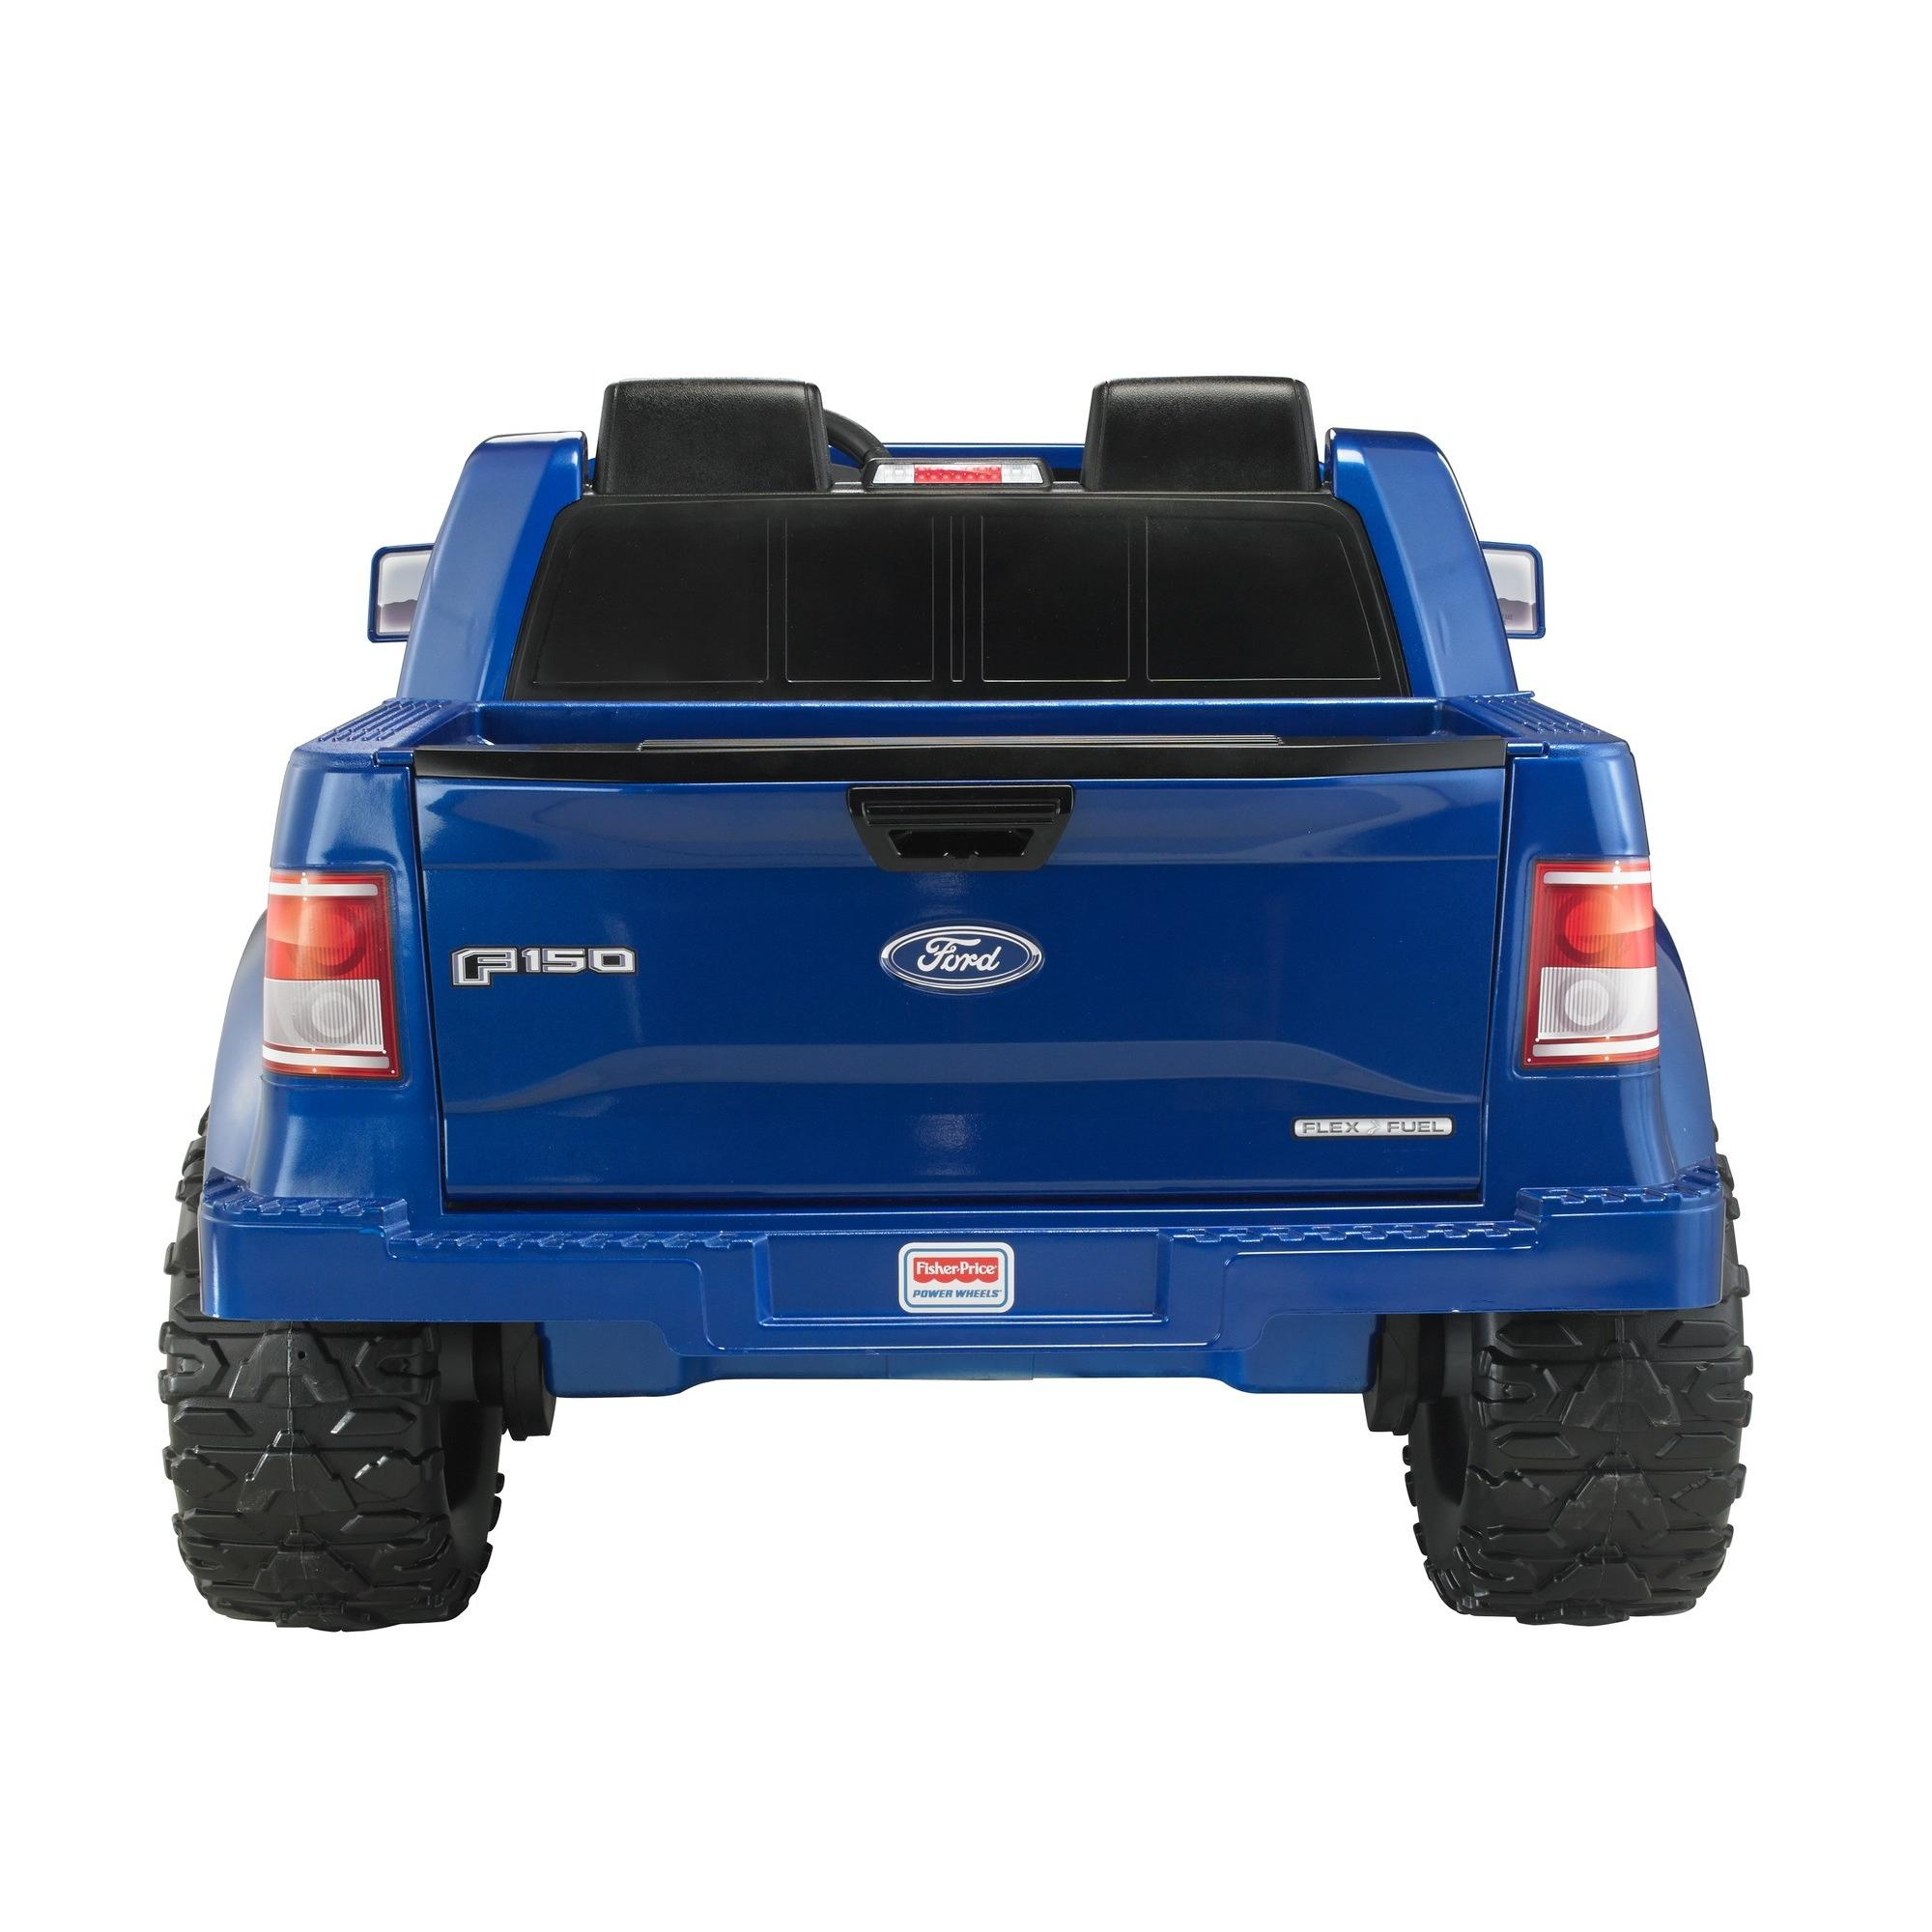 Power Wheels Ford F-150 12-V Battery-Powered Ride-On Vehicle